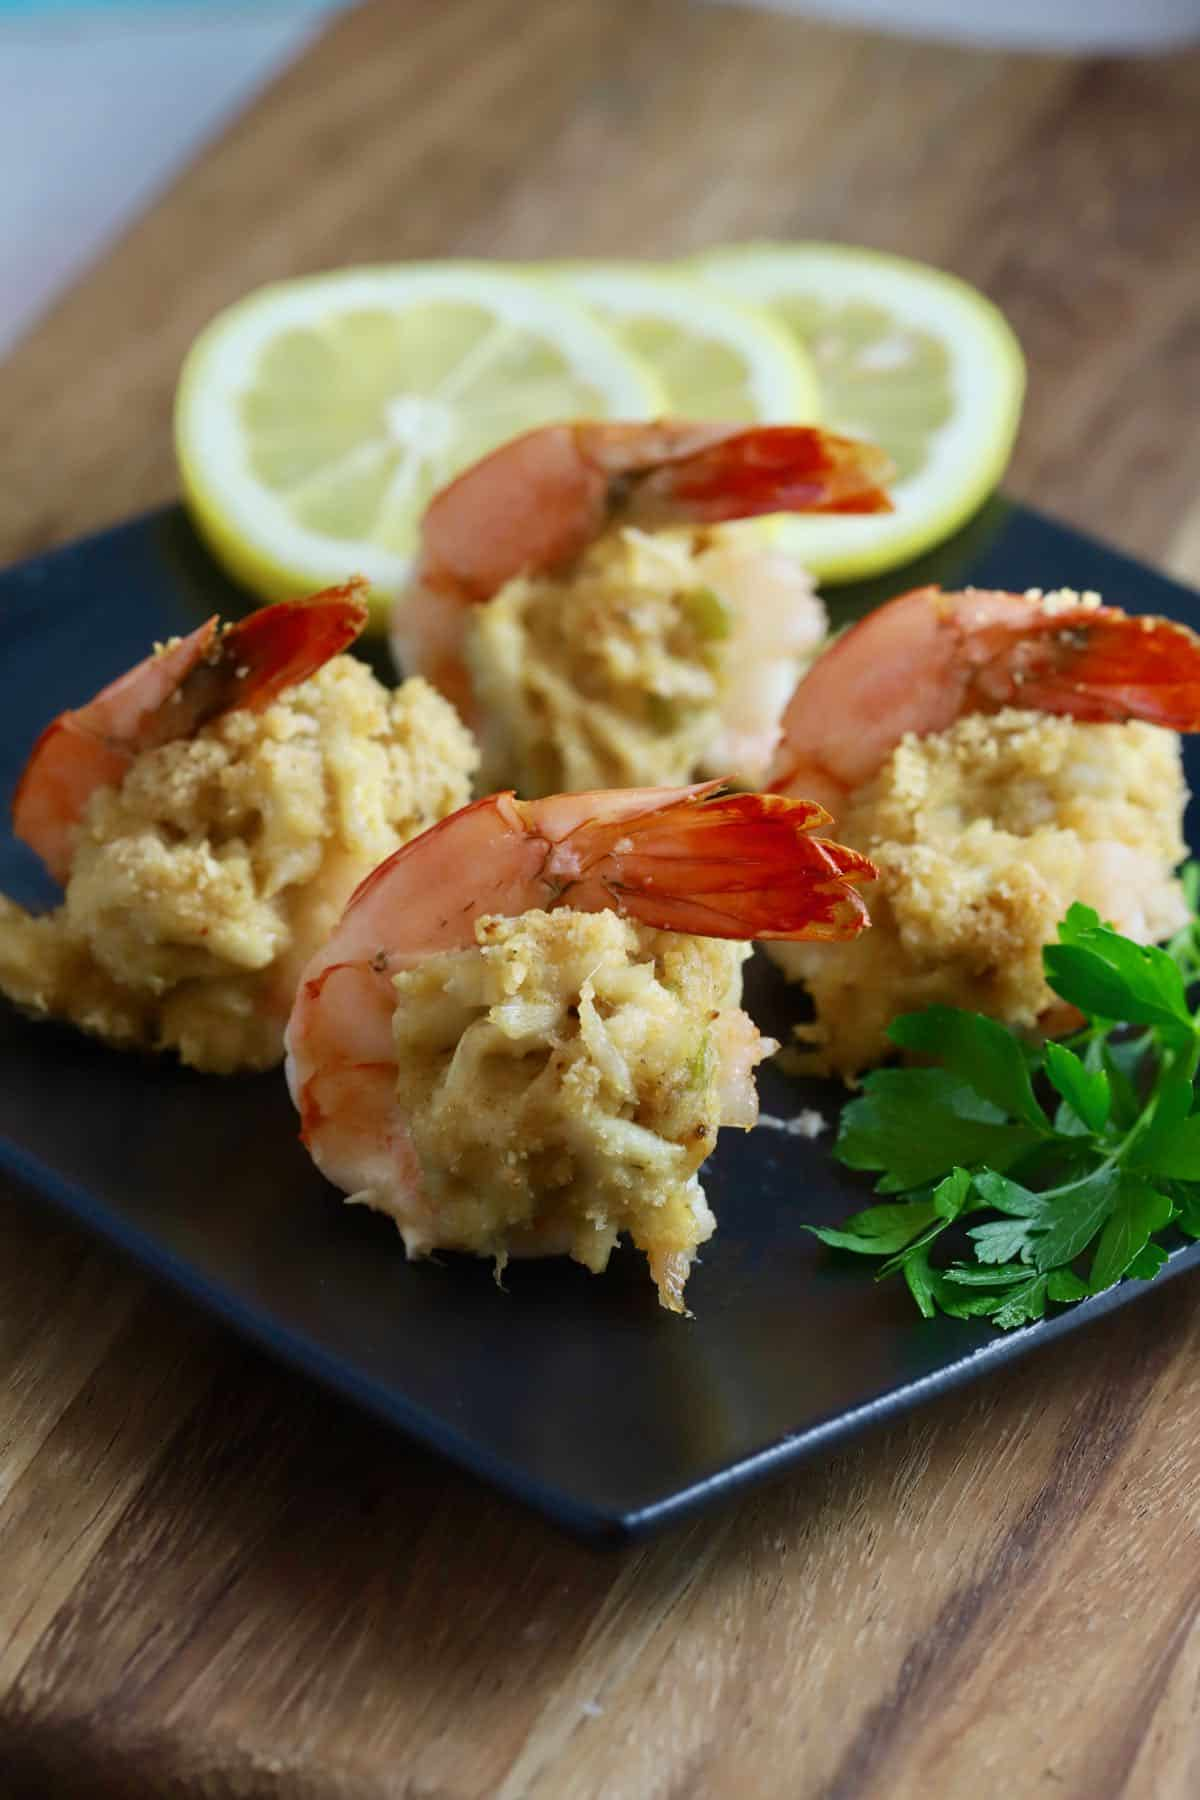 A black plate with four stuffed shrimp.